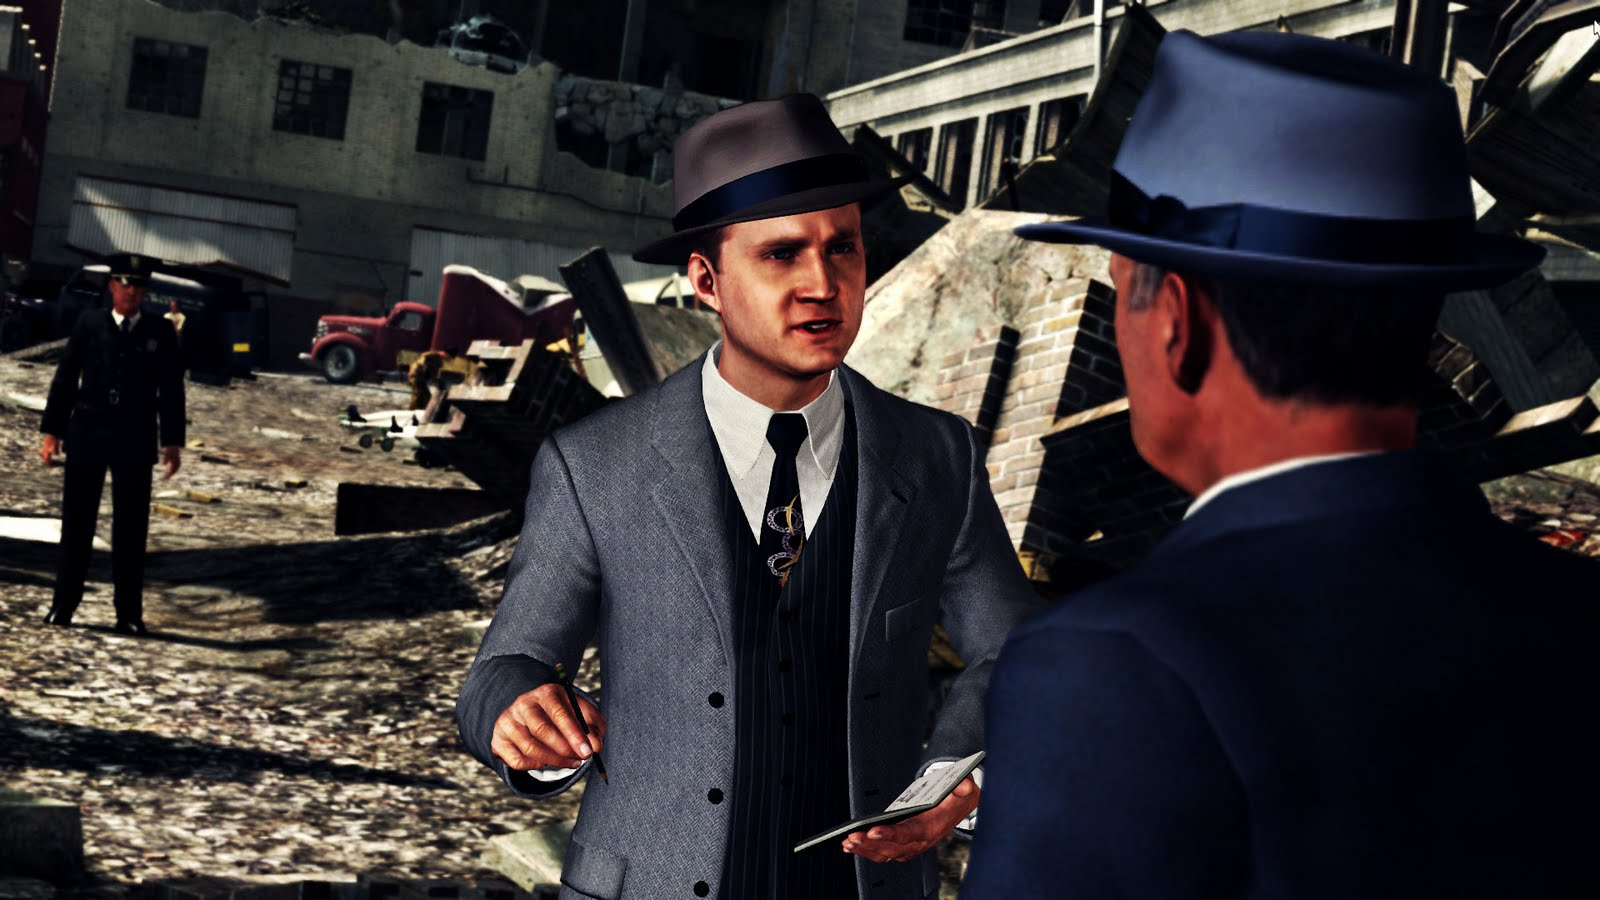 L.A.Noire.The.Complete.Edition.v1.0.2393.1.multi5.cracked.READ.NFO-THETA--14-221301.jpg